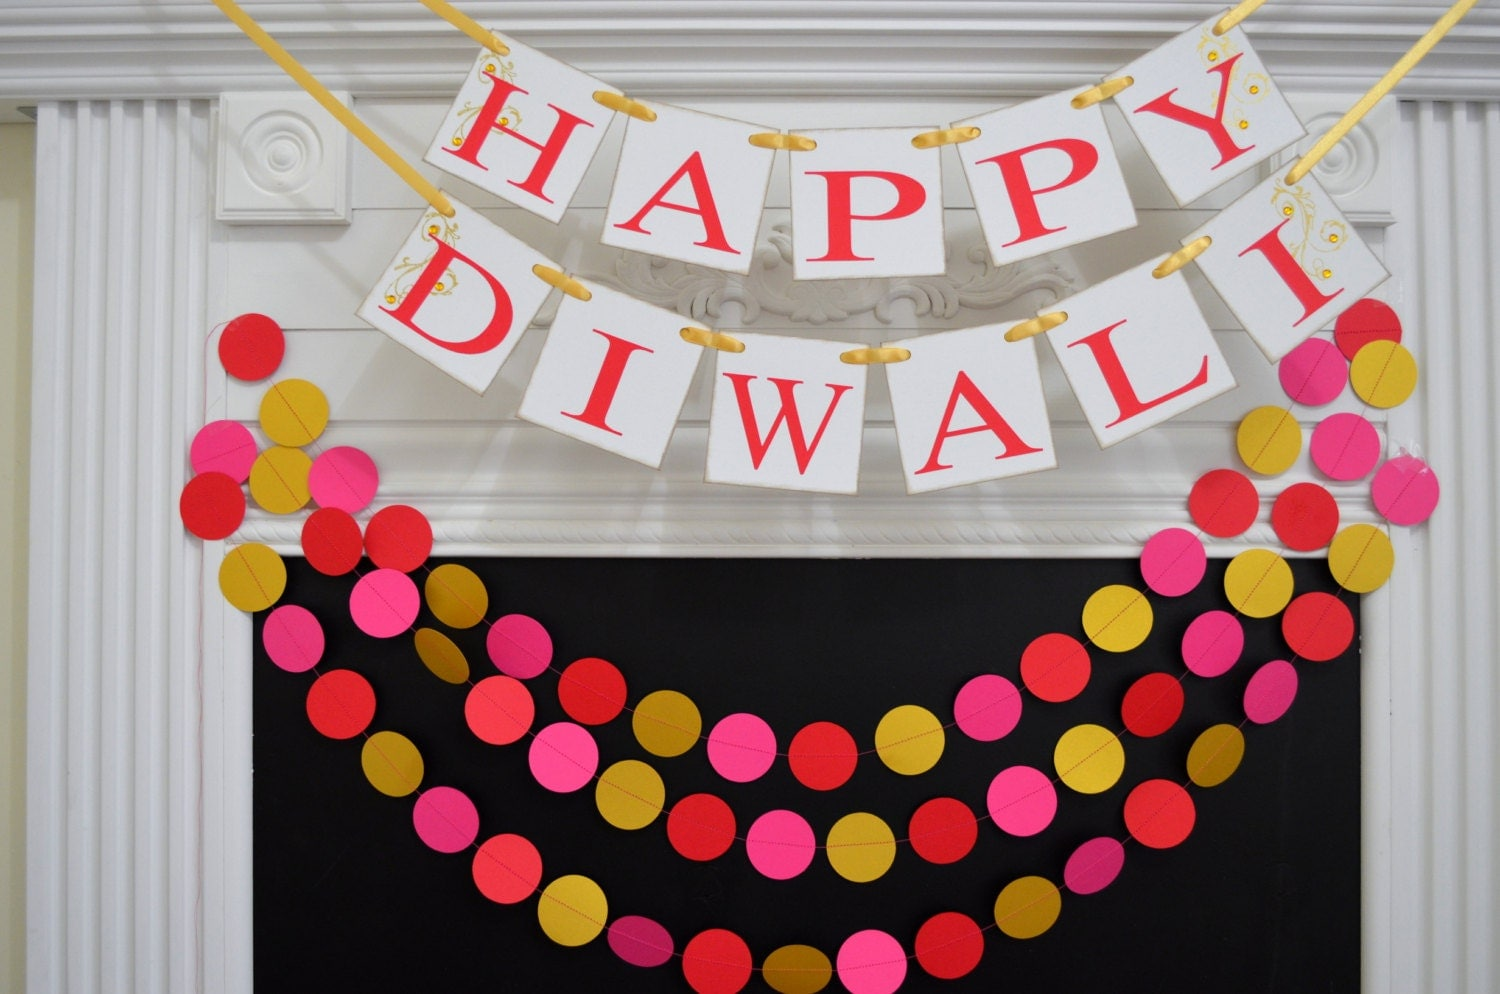 Indian Festival Decoration Diwali Decorations Happy Diwali Banner Indian Festival Of